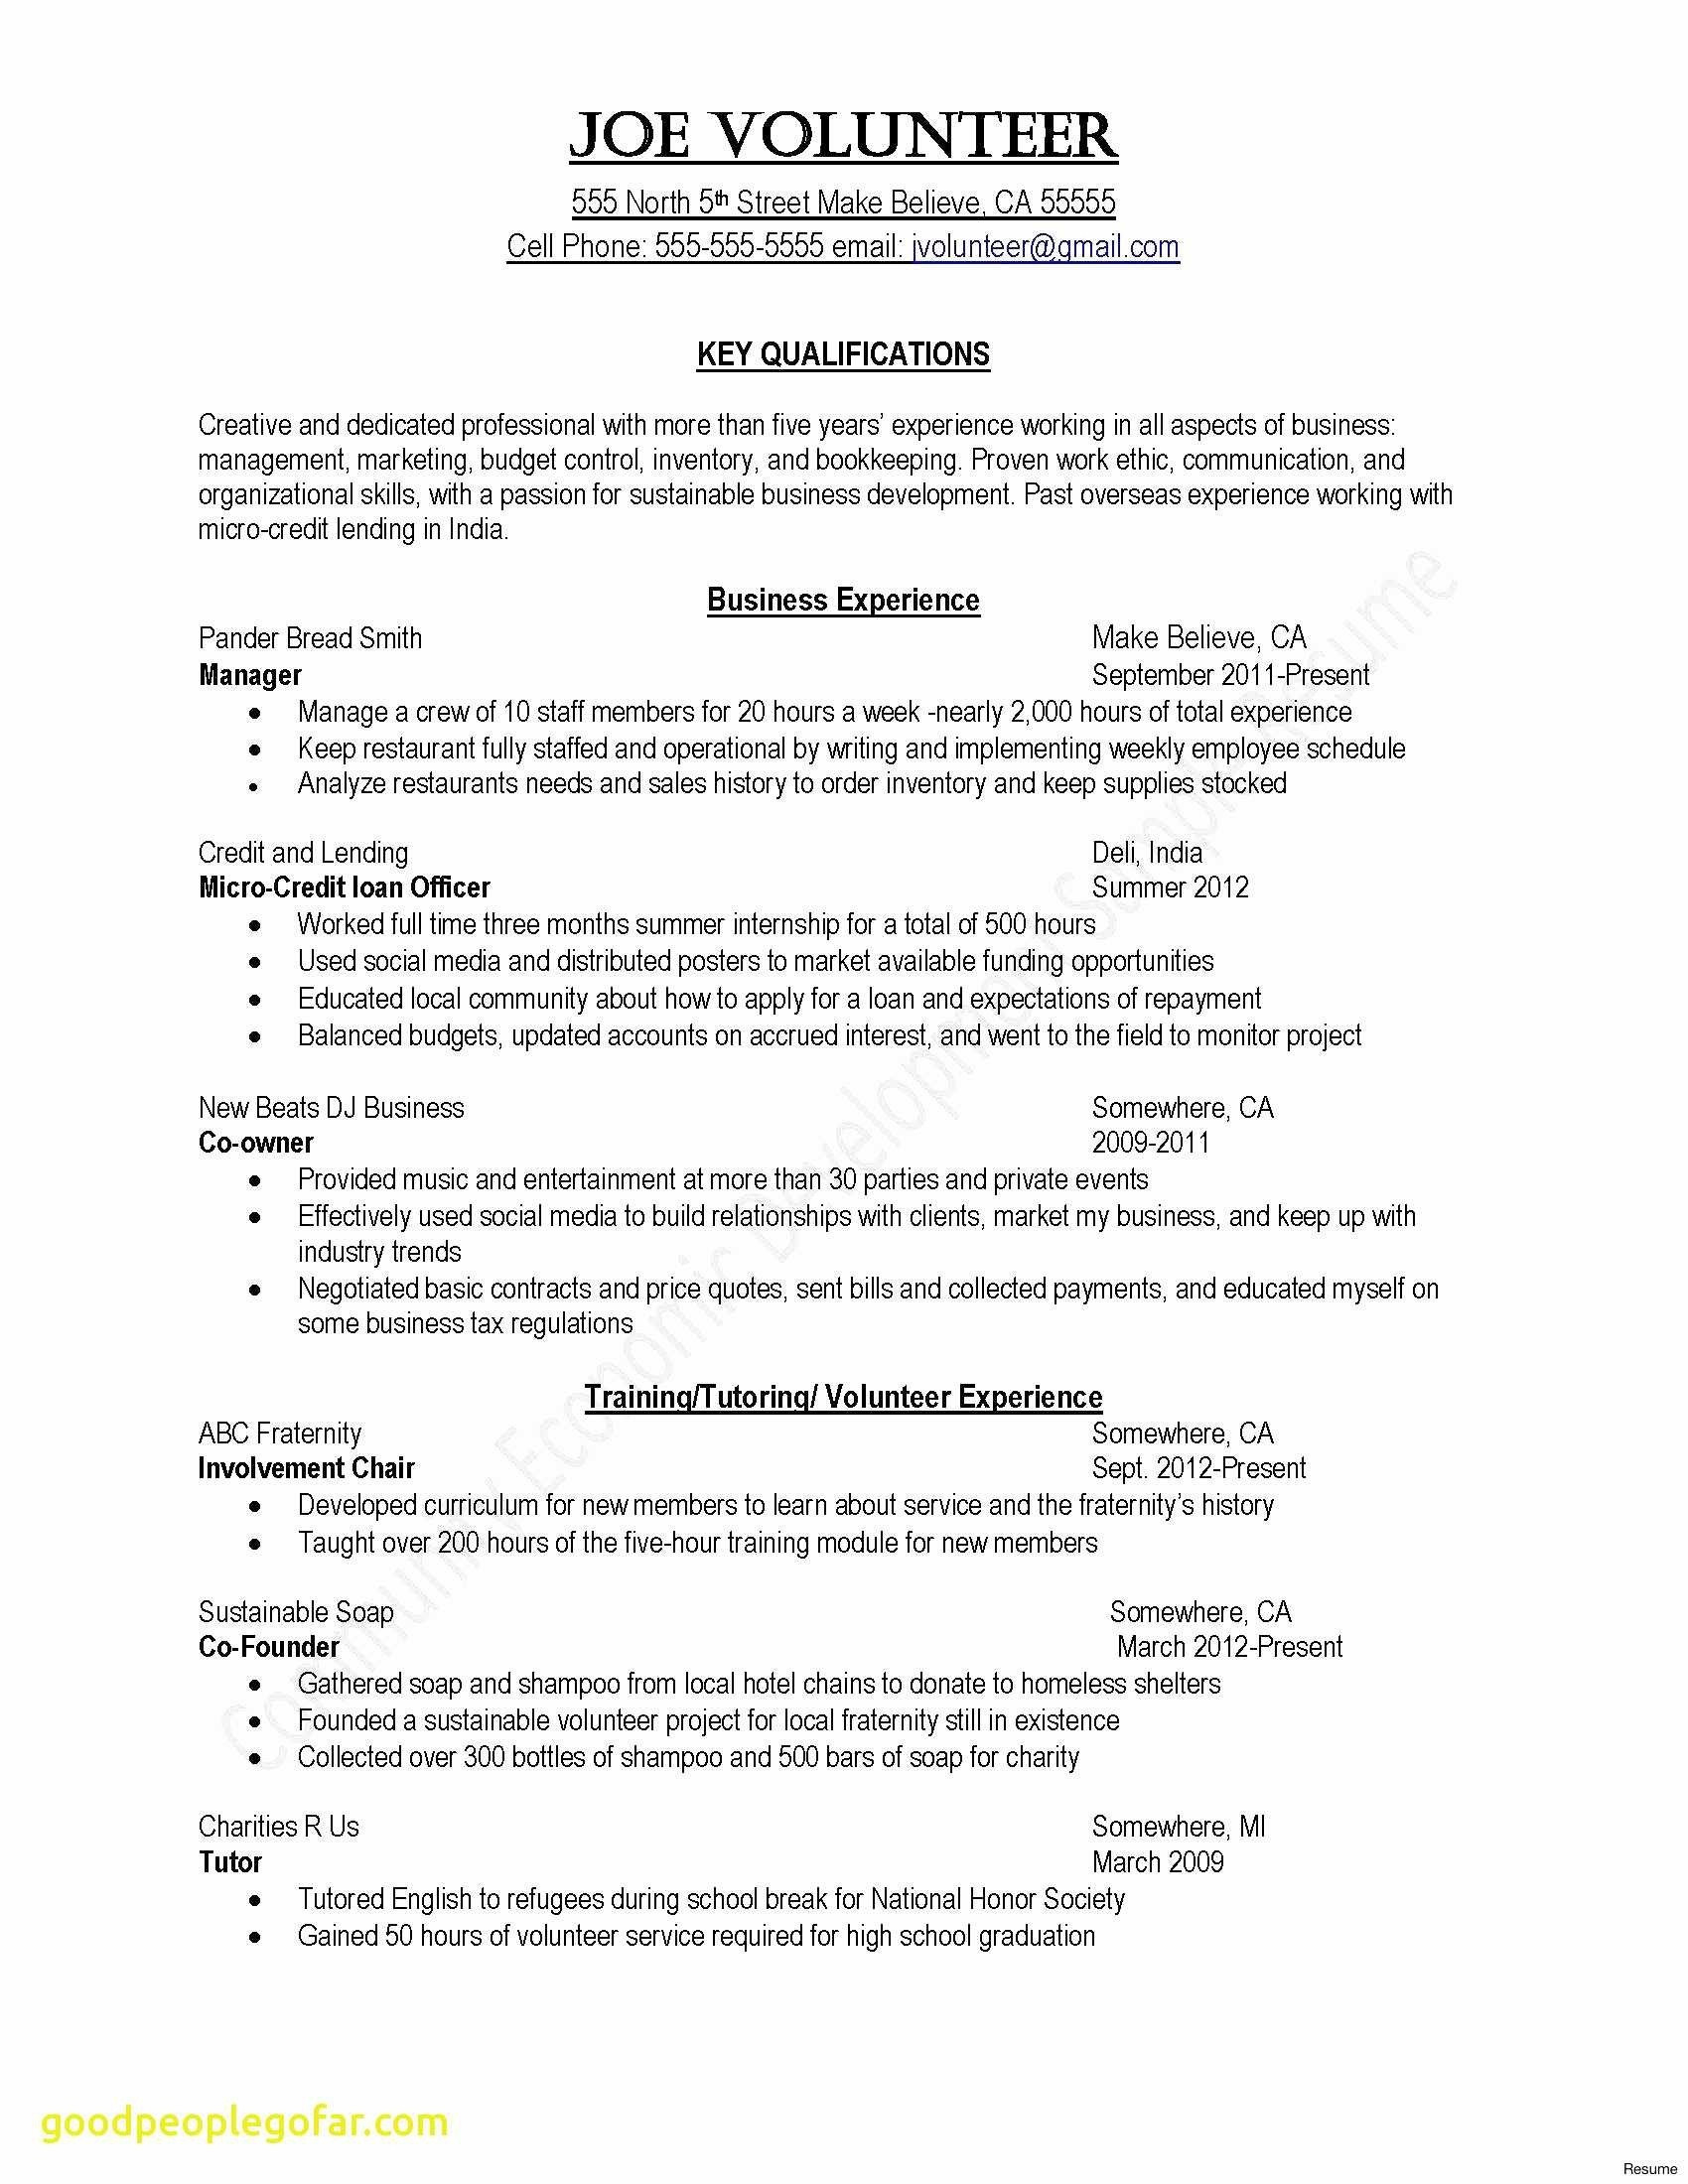 Resume for Police Officer with No Experience - Trainer Resume Unique Fitness Instructor Resume New Personal Trainer